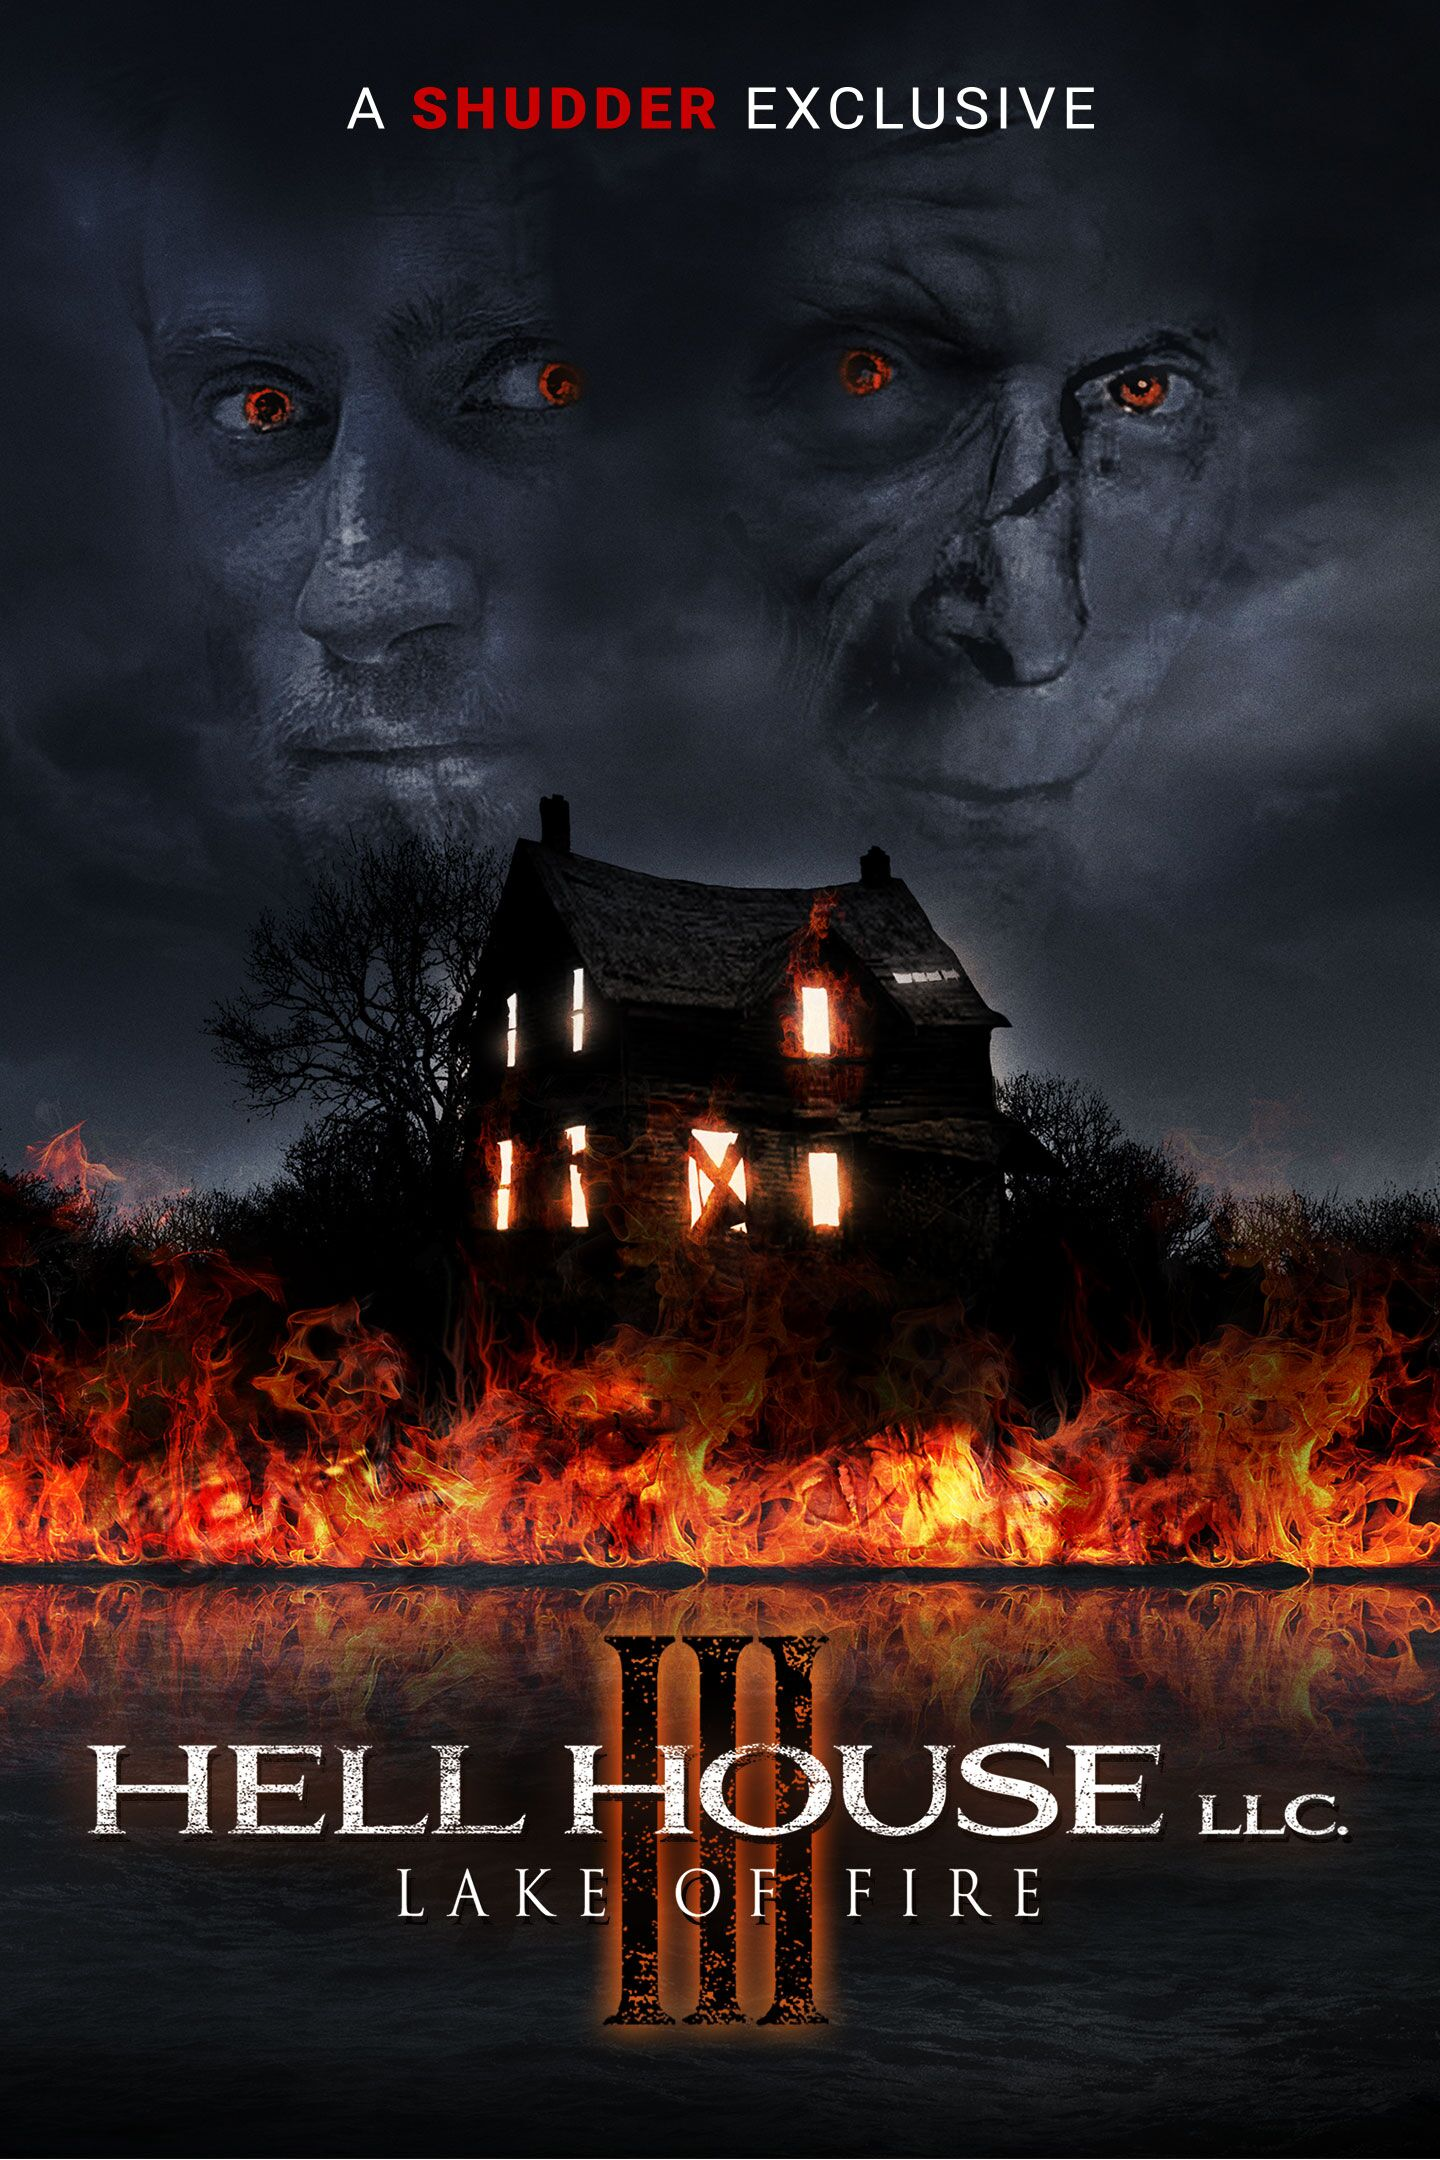 Shudder invites us to dip a toe in Lake of Fire with Hell House LLC III